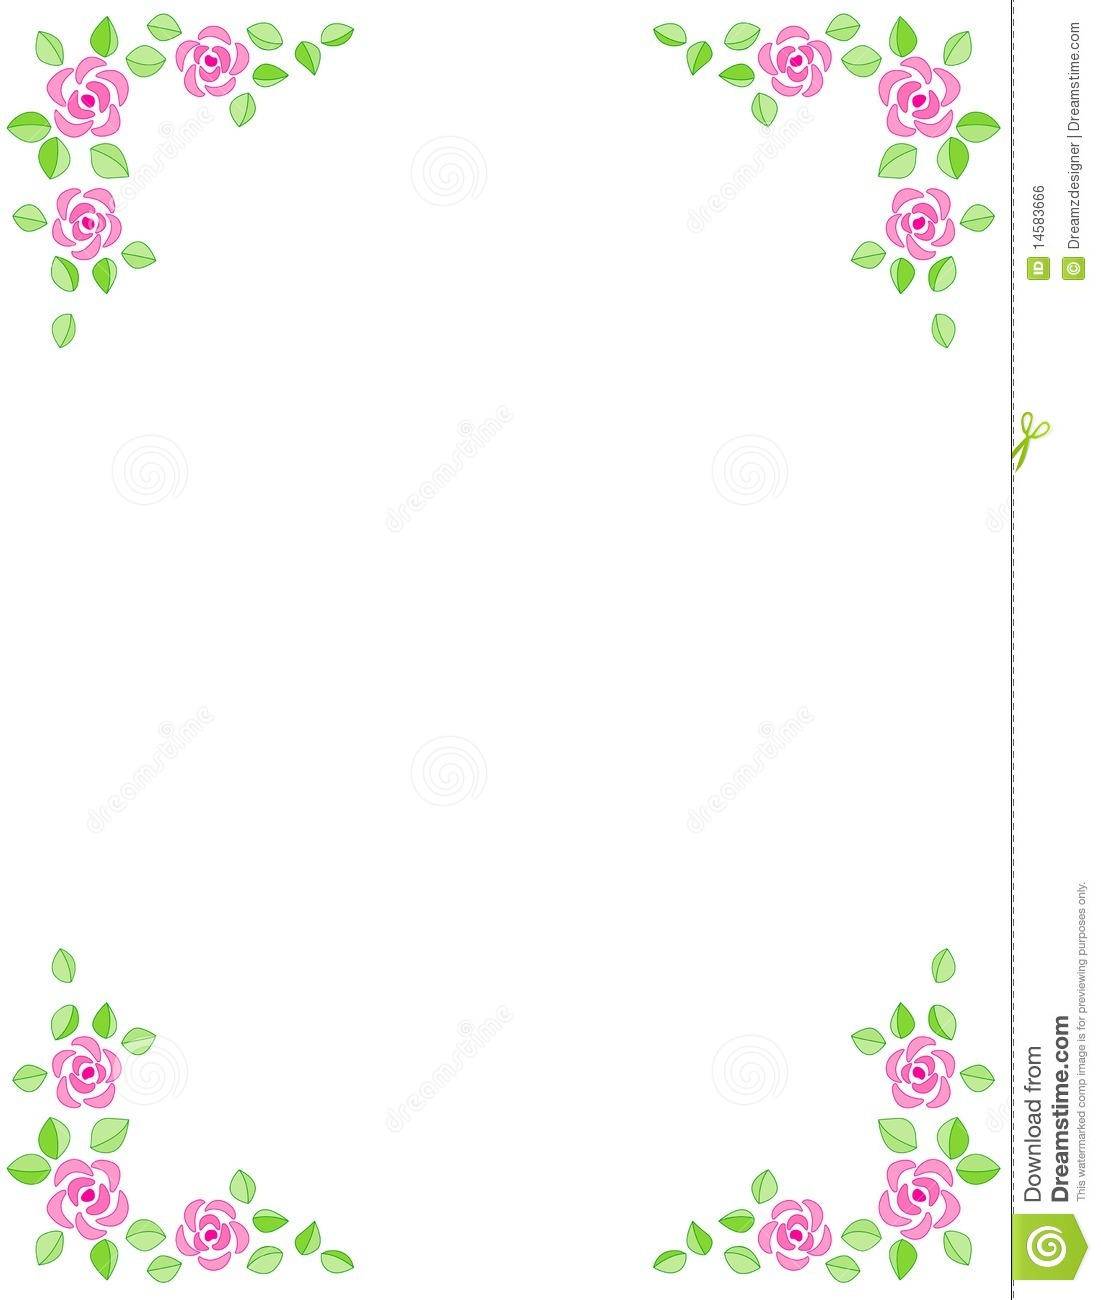 ... Border / Wedding Invitation Royalty Free Stock Image - Image: 14583666